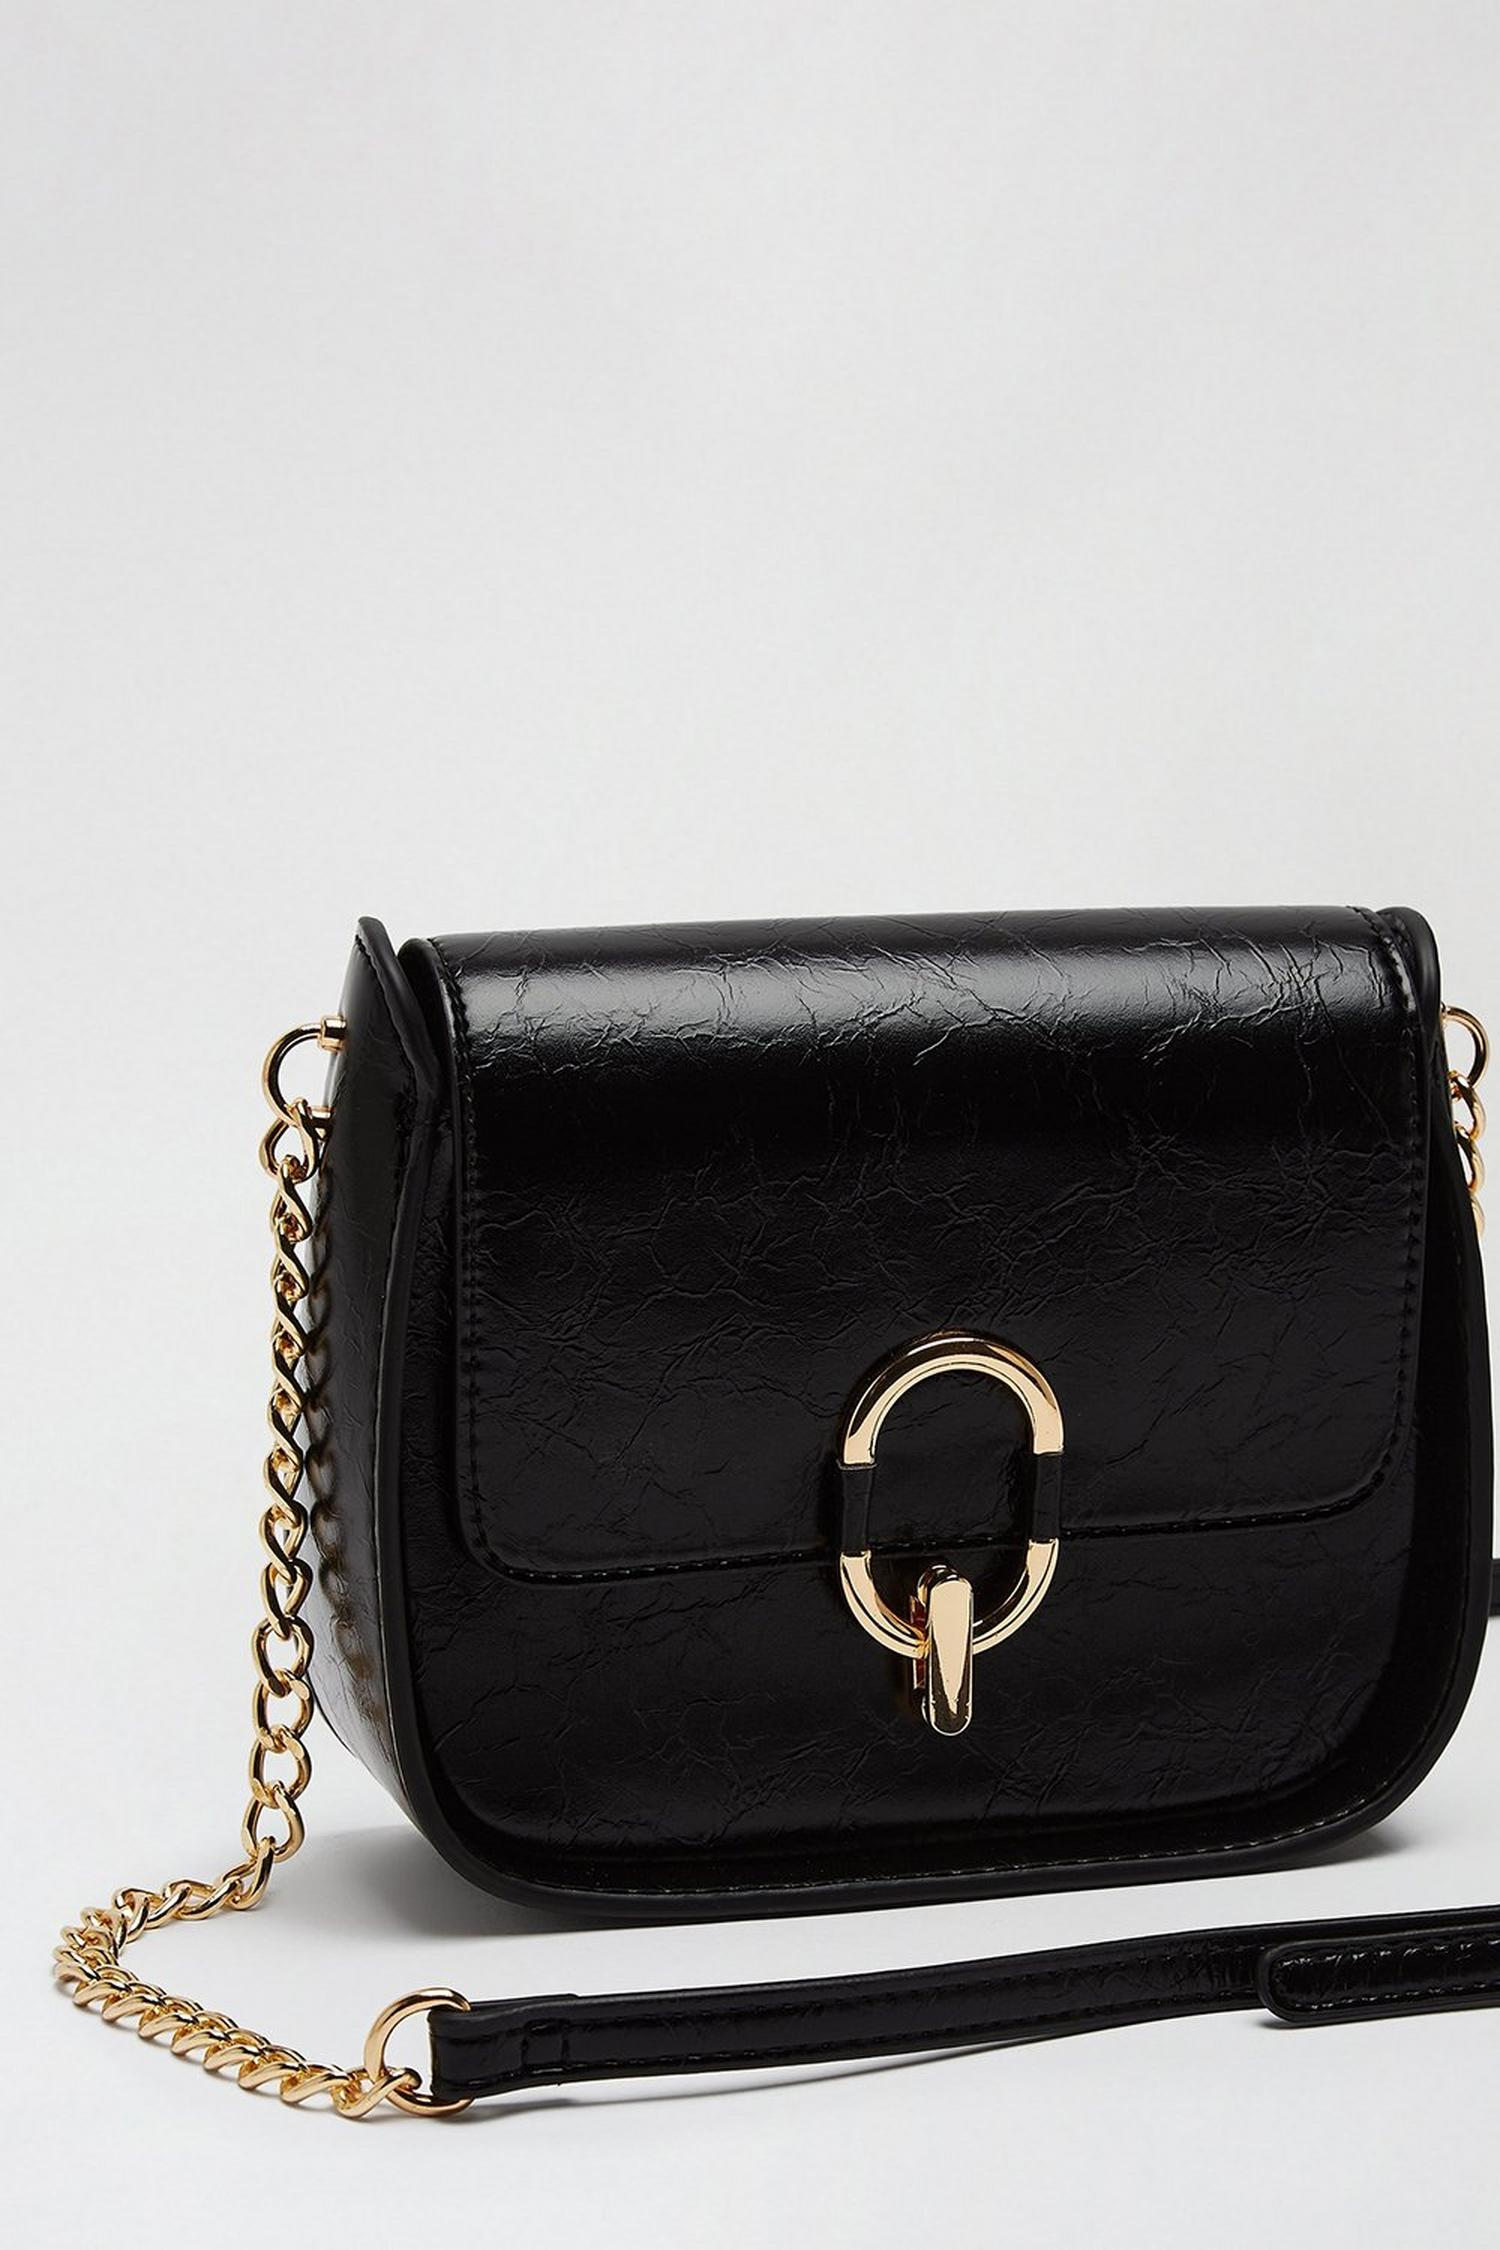 105 Black Oval Ring Saddle Bag image number 3